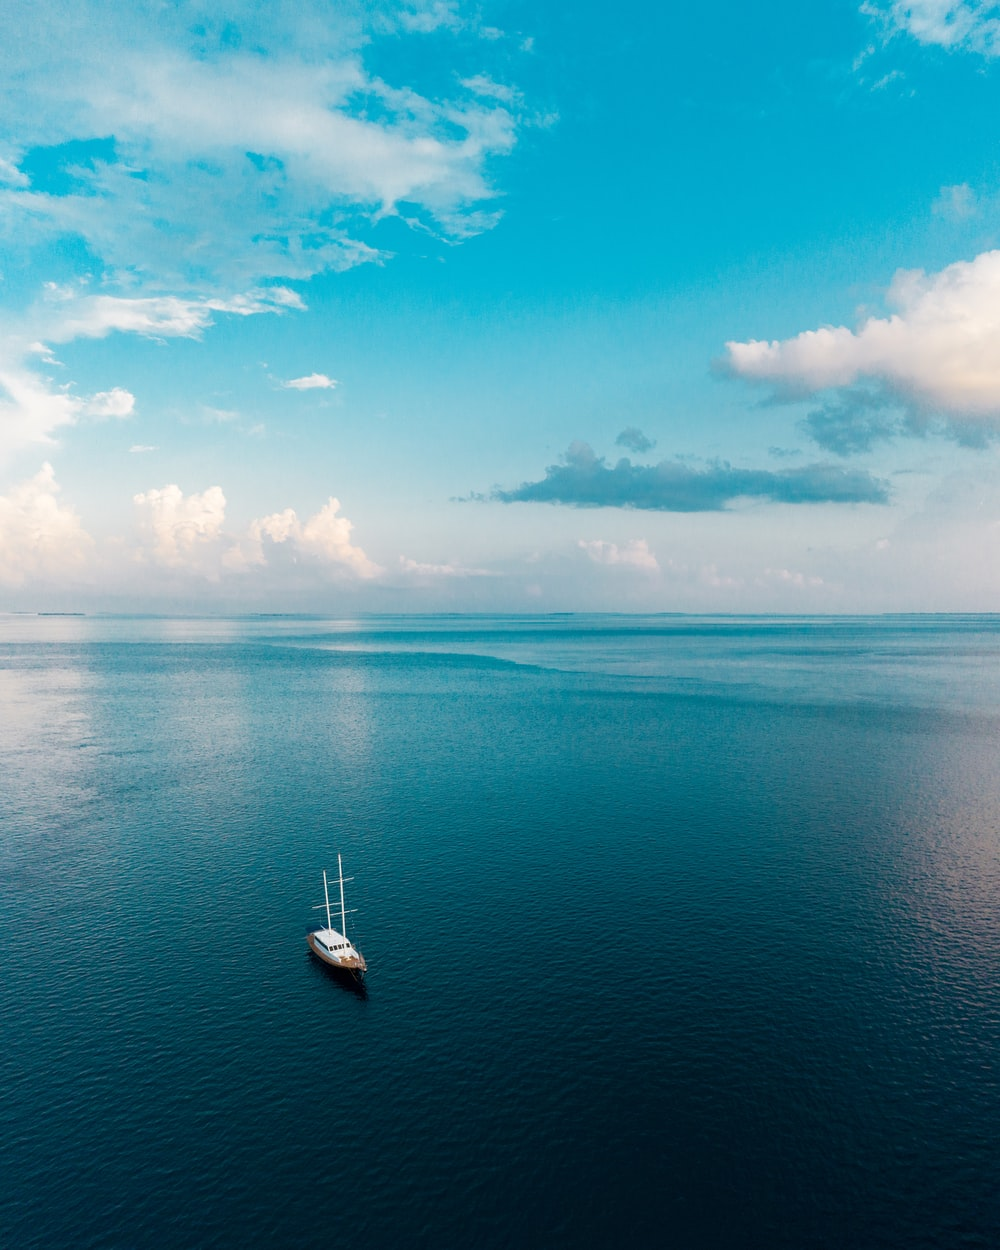 white boat on blue sea under blue sky and white clouds during daytime